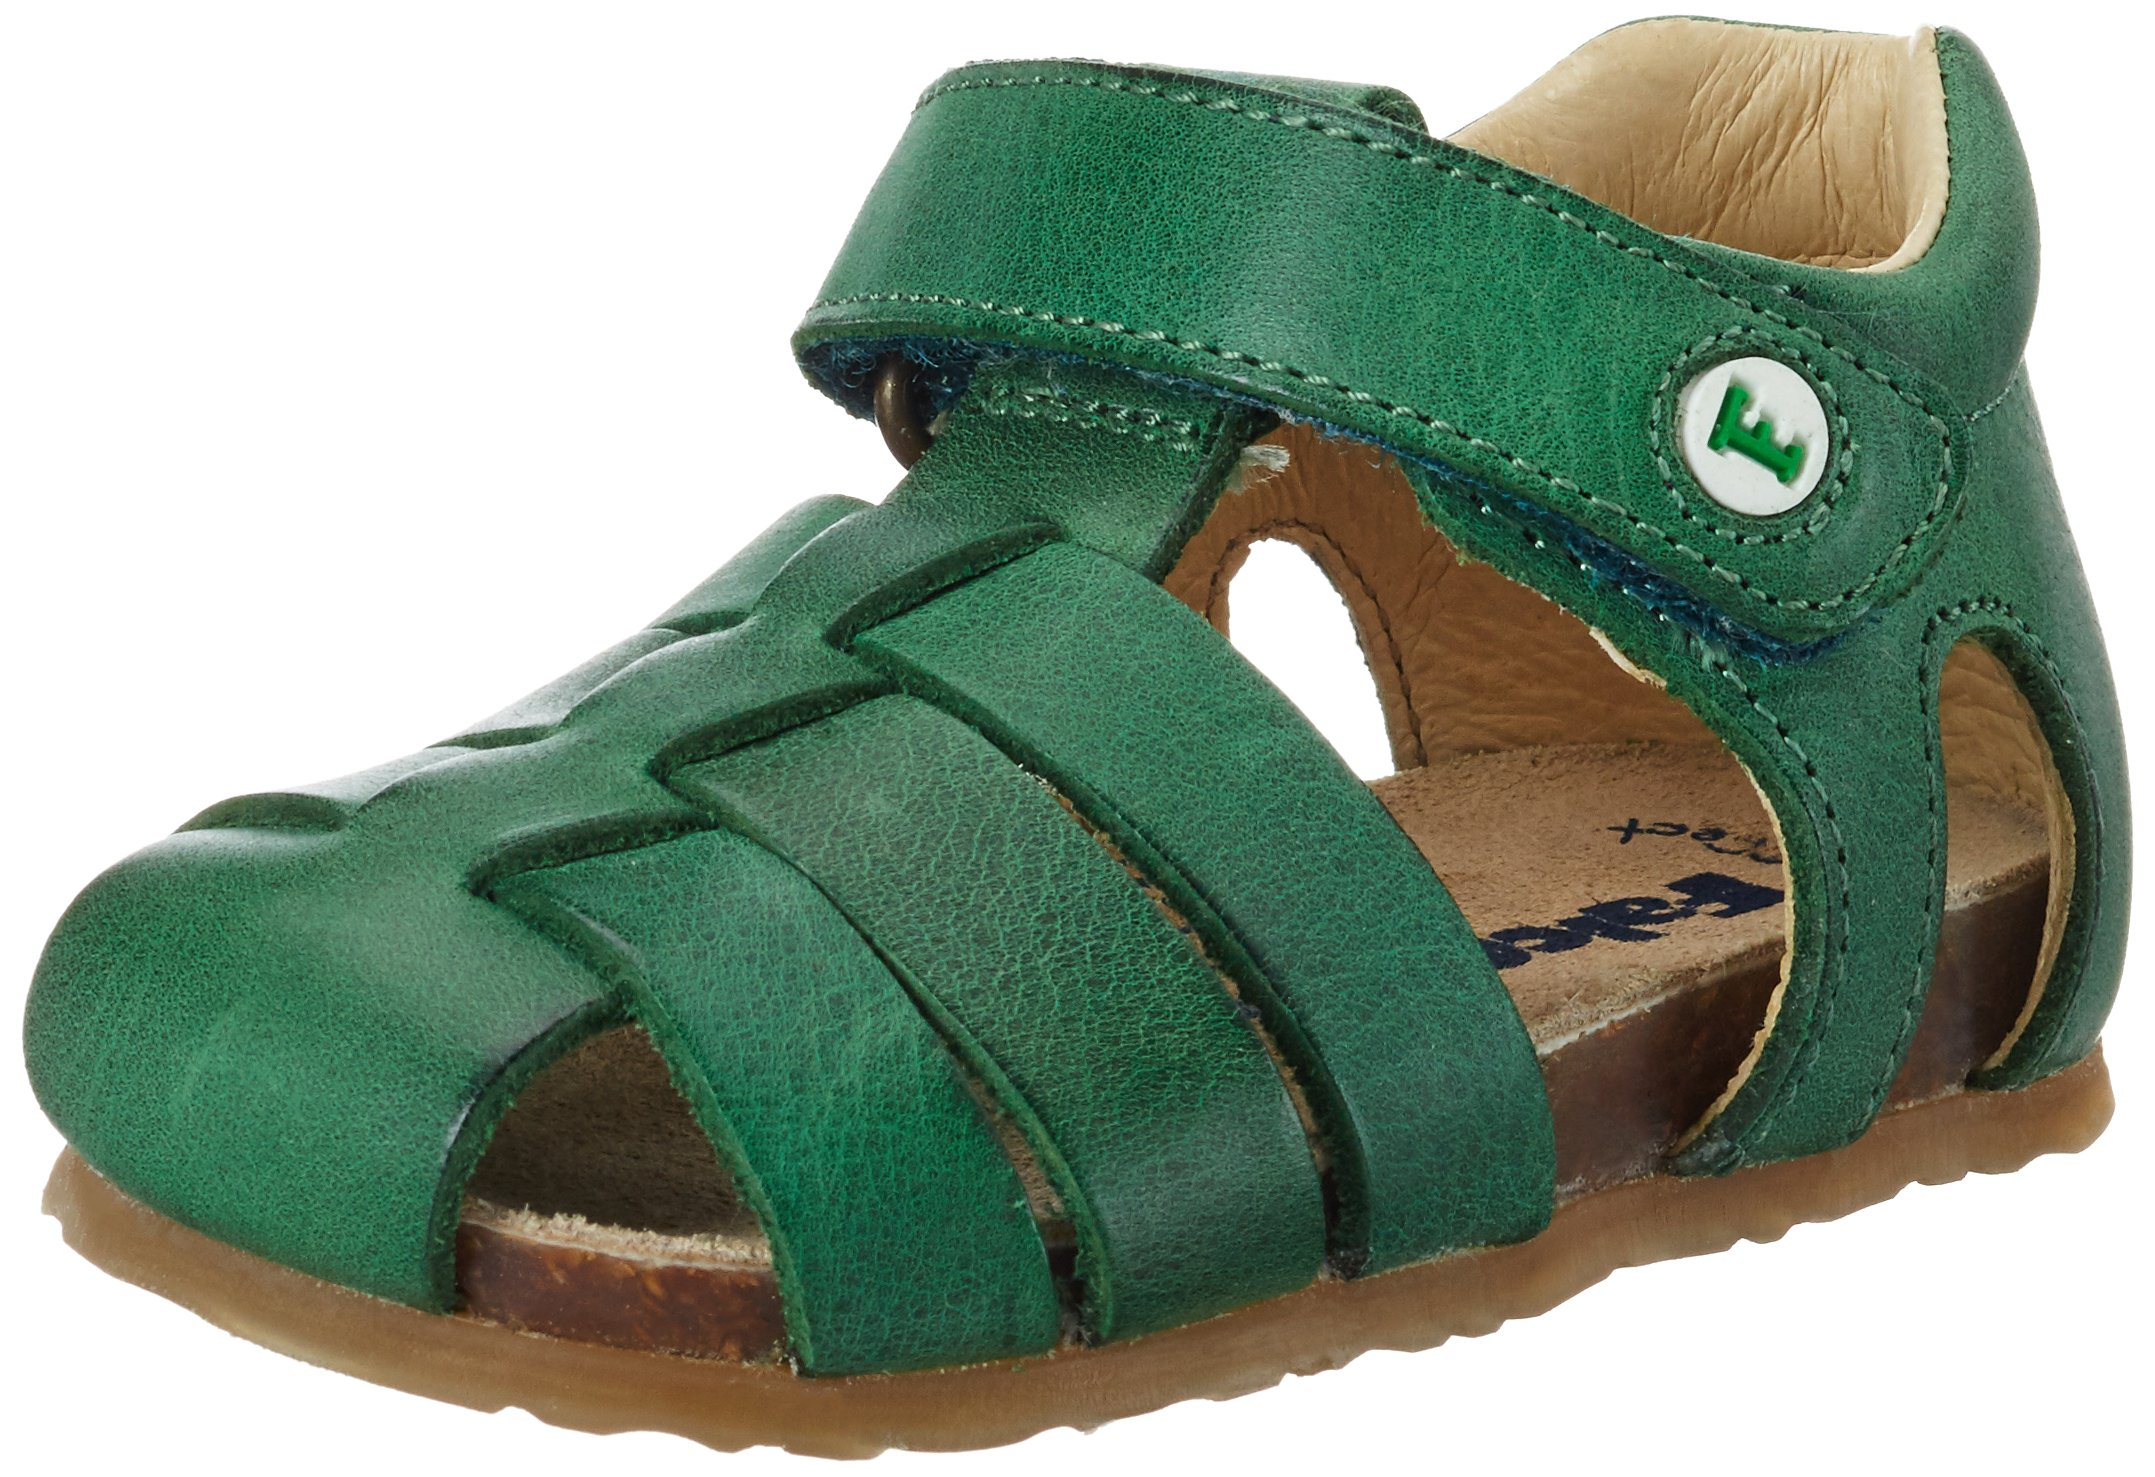 Naturino Boys' Falcotto 1405-K, Verde, 23 EU(7 M US Toddler) by Naturino